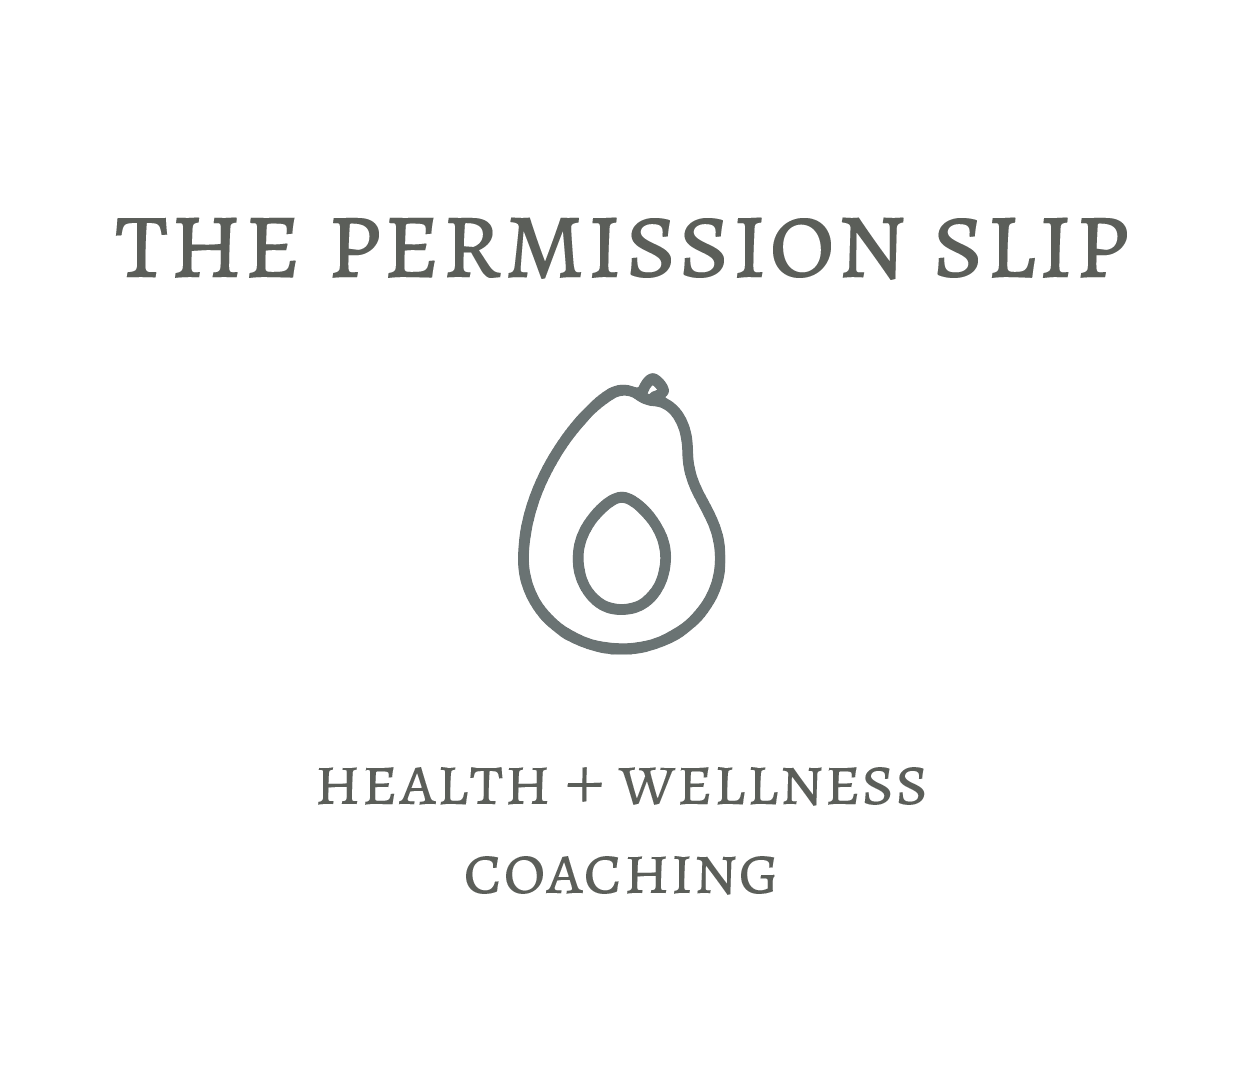 The Permission Slip